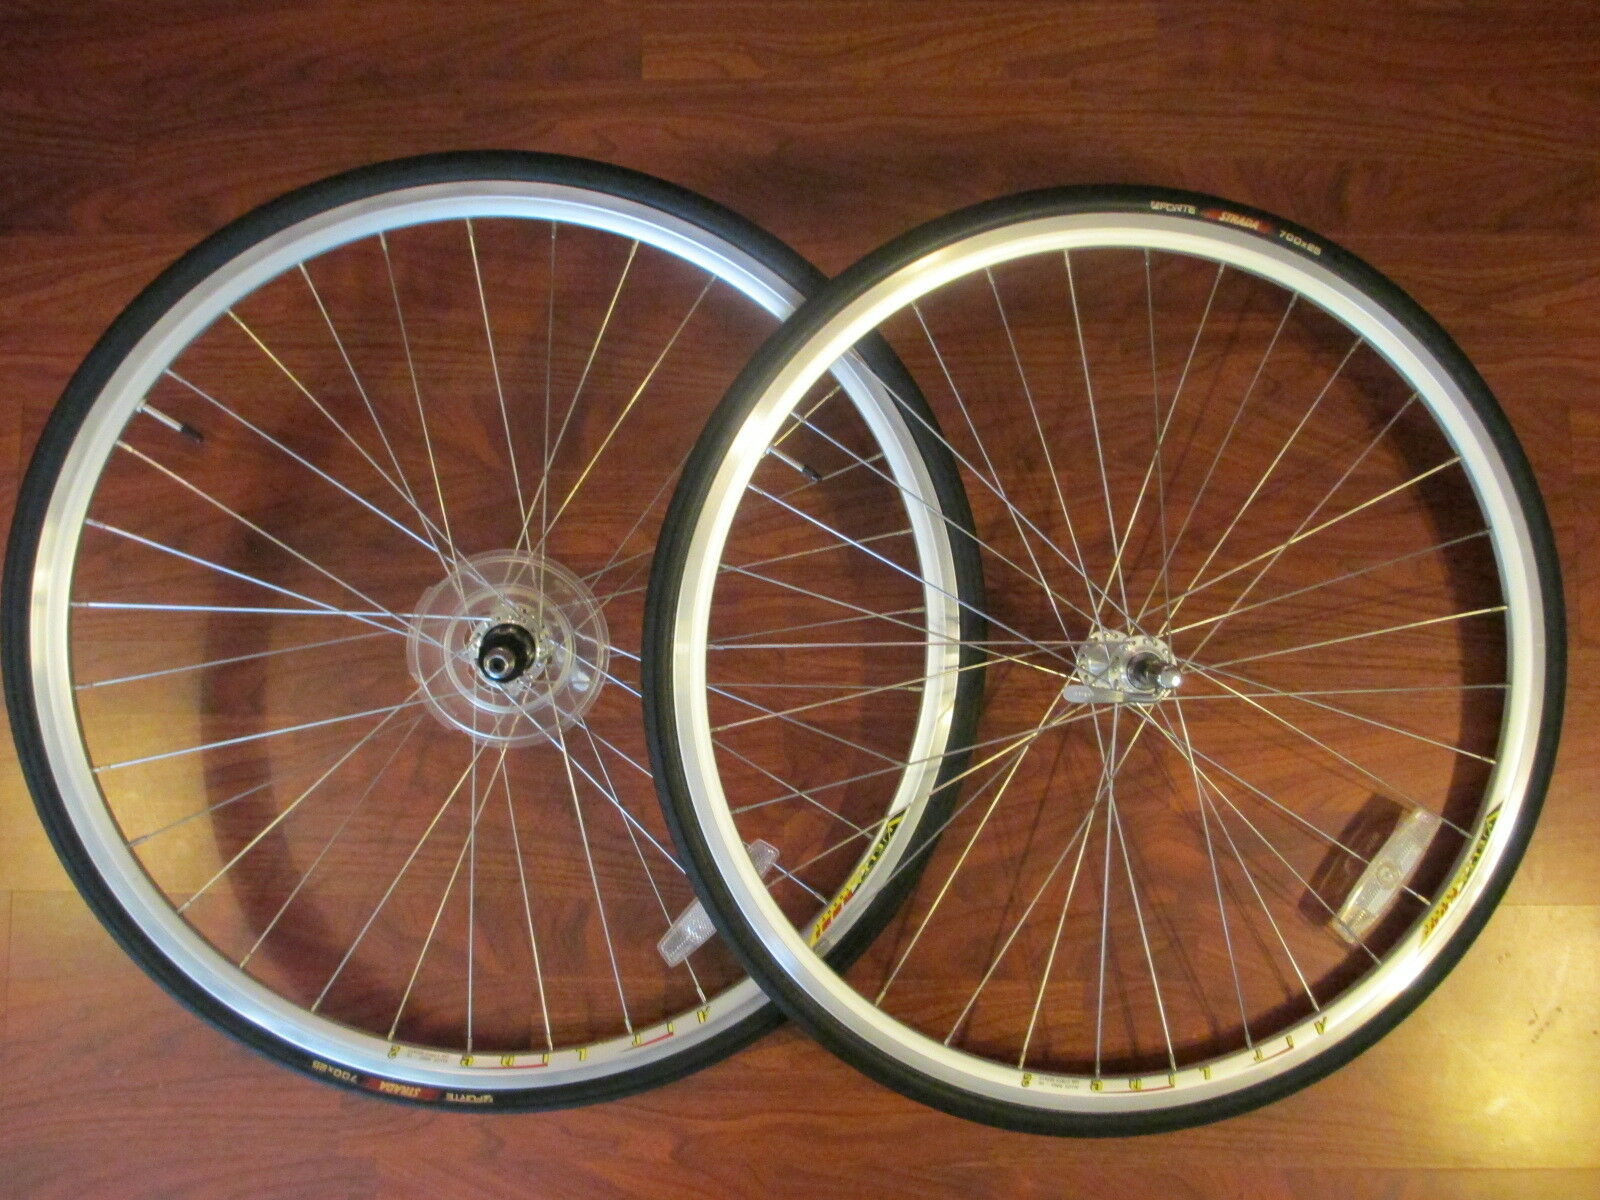 VUELTA RODI EUROPE AIRLINE 2 SHIMANO 8 9 10 SPEED WHEEL SET 700 x 25 FORTE TIRES